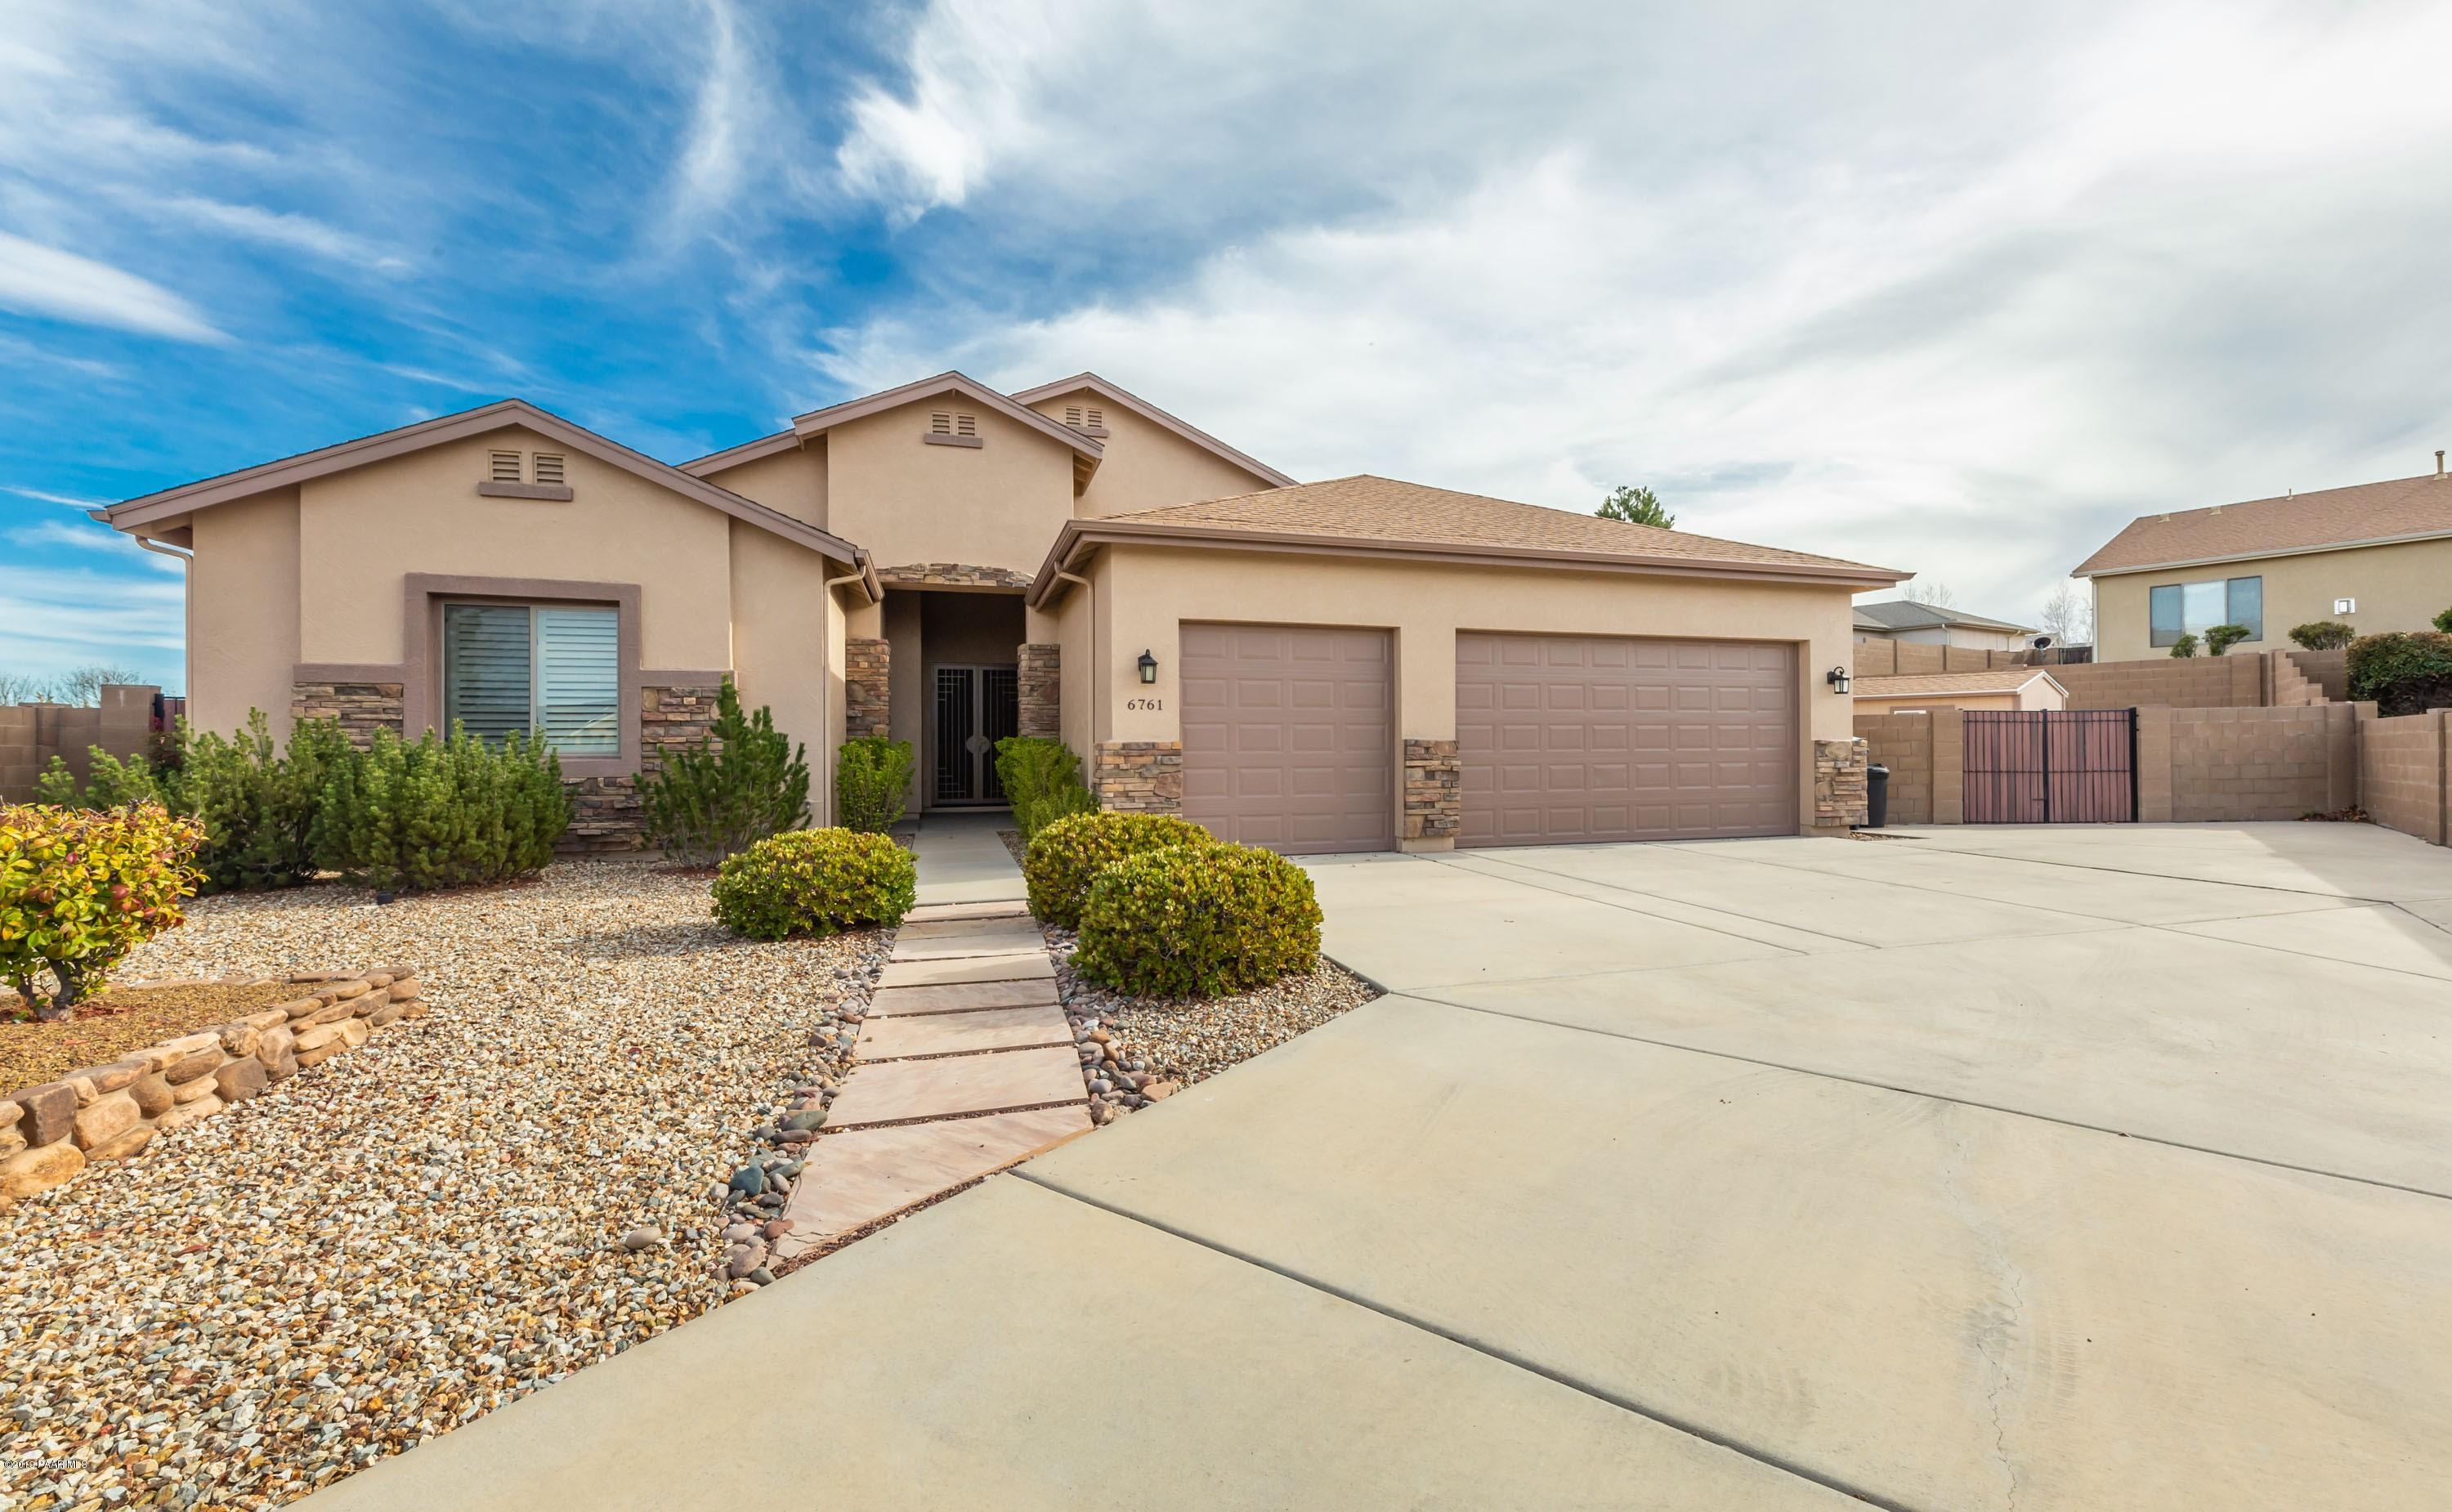 6761 E Sereno Court Prescott Joe Karcie Featured Properties for Sale Prescott AZ Real Estate - Joe Karcie REALTOR RE/MAX Mountain Properties Your Source for Buying and Selling Real Estate in the Prescott Area.